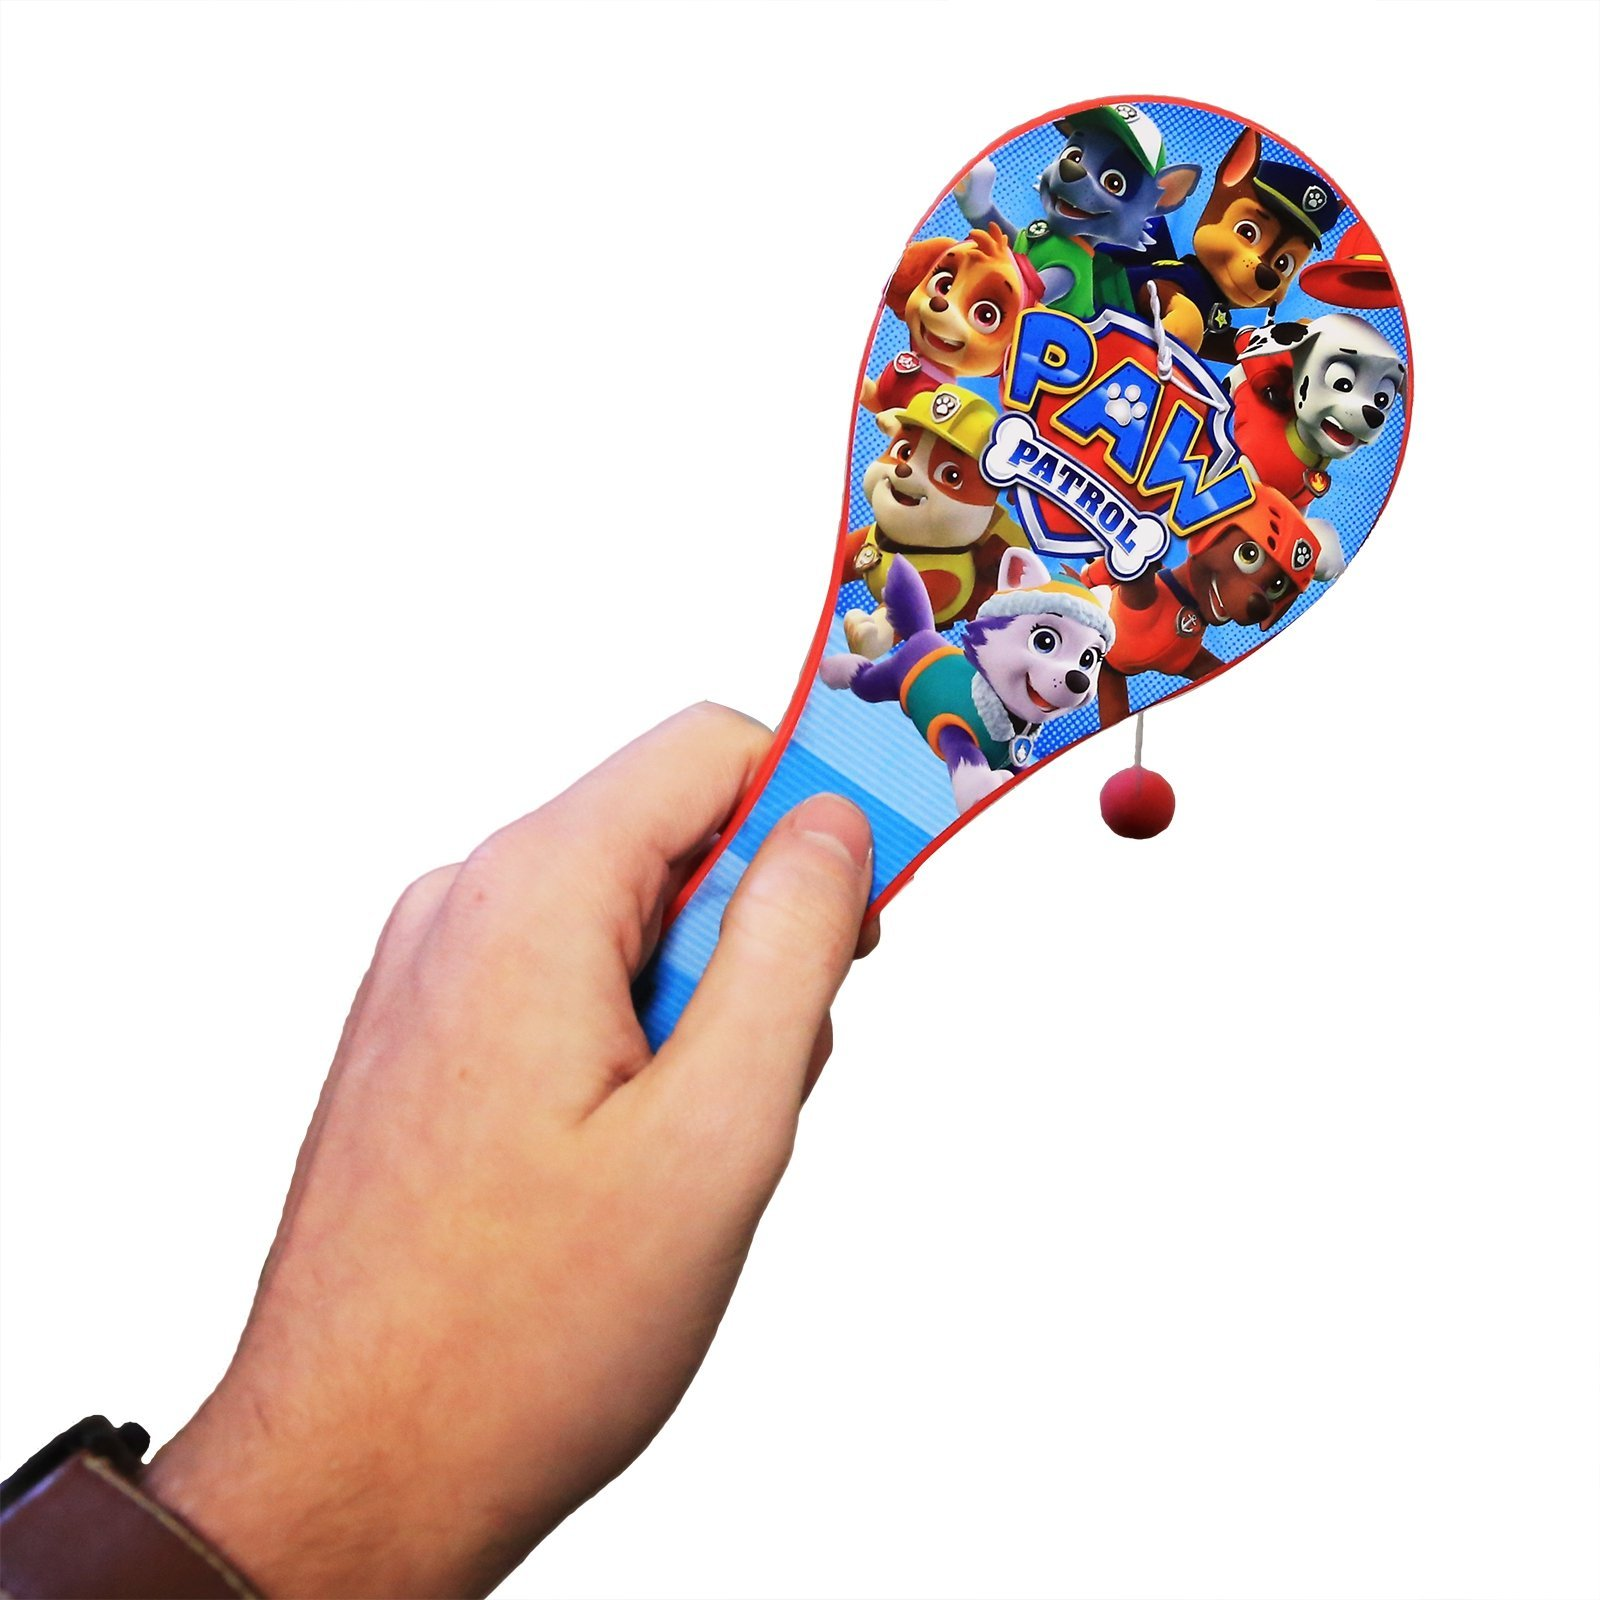 Nickelodeon Officially Licensed Paw Patrol Paddle Ball Toy Kids Outdoor Play